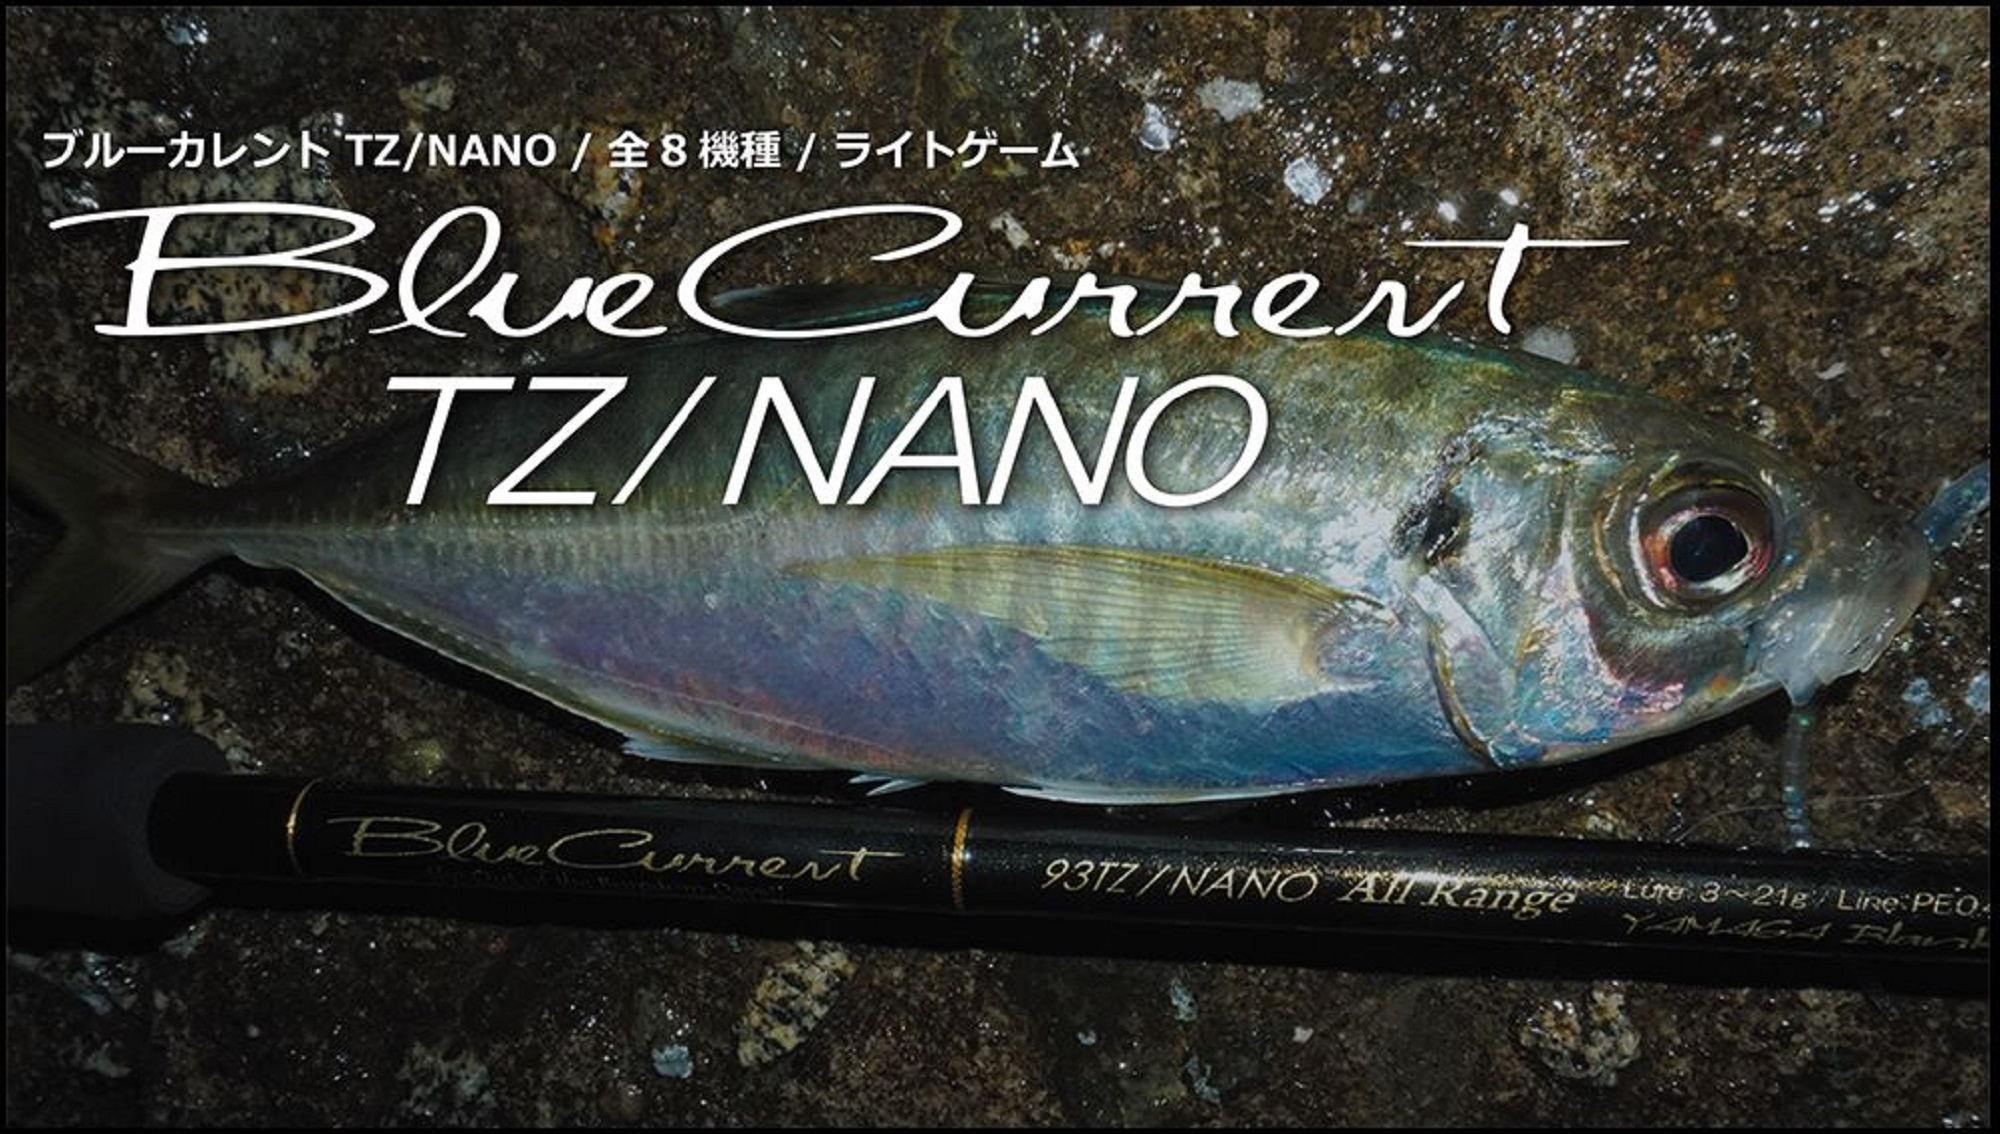 Yamaga Rod Spinning Light Game Model Blue Current 71/TZ NANO JH Special (7249)